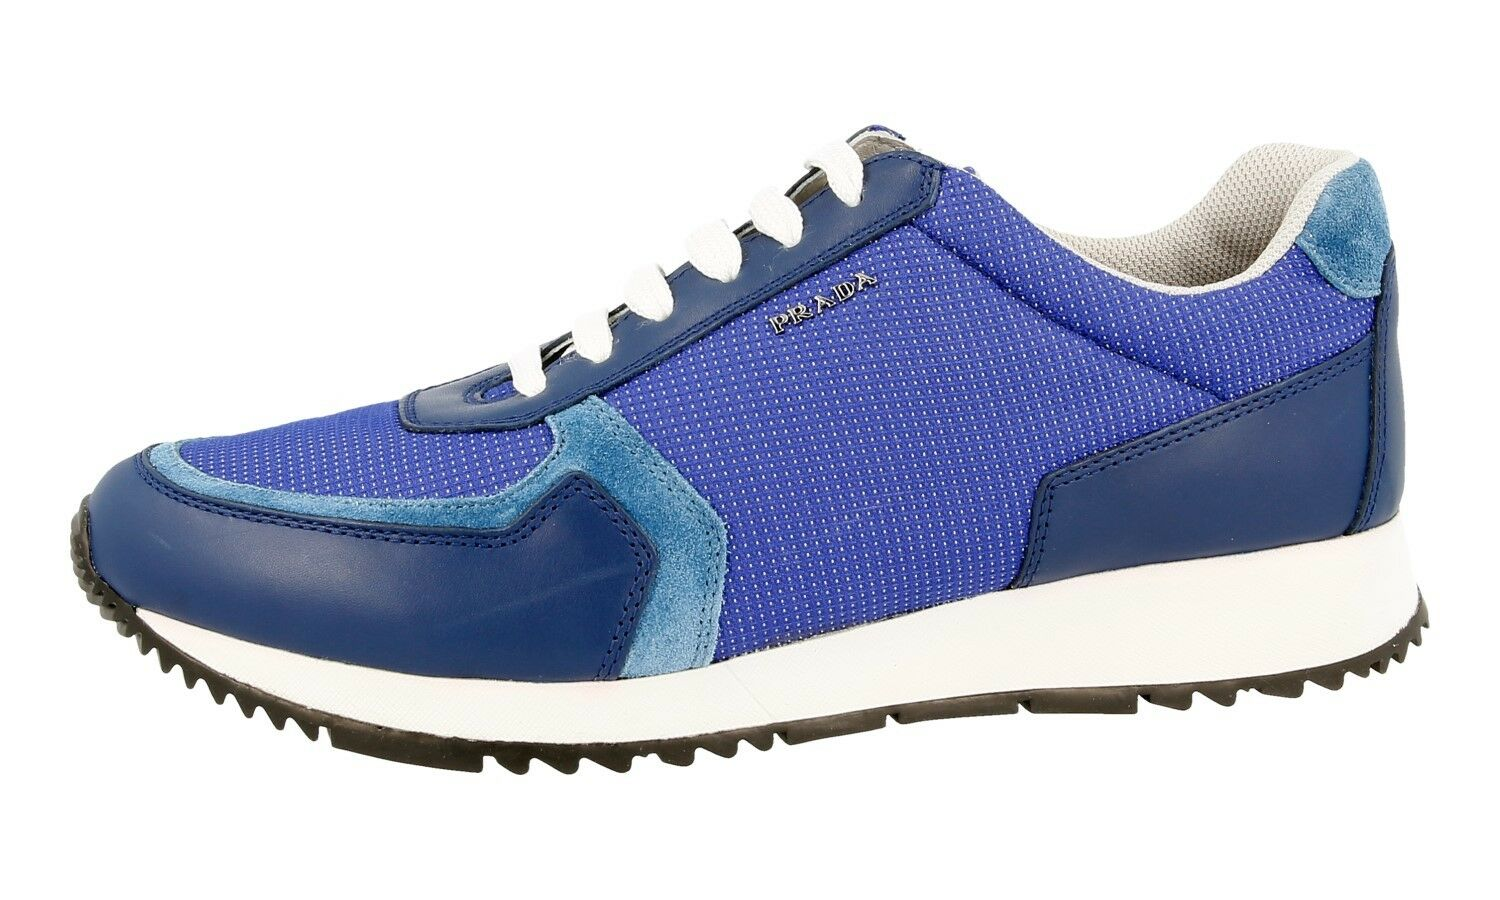 AUTHENTIC LUXURY LUXURY LUXURY PRADA SNEAKERS SHOES 3E6183 ROYAL NEW 41 41,5 UK 8 70f8ce